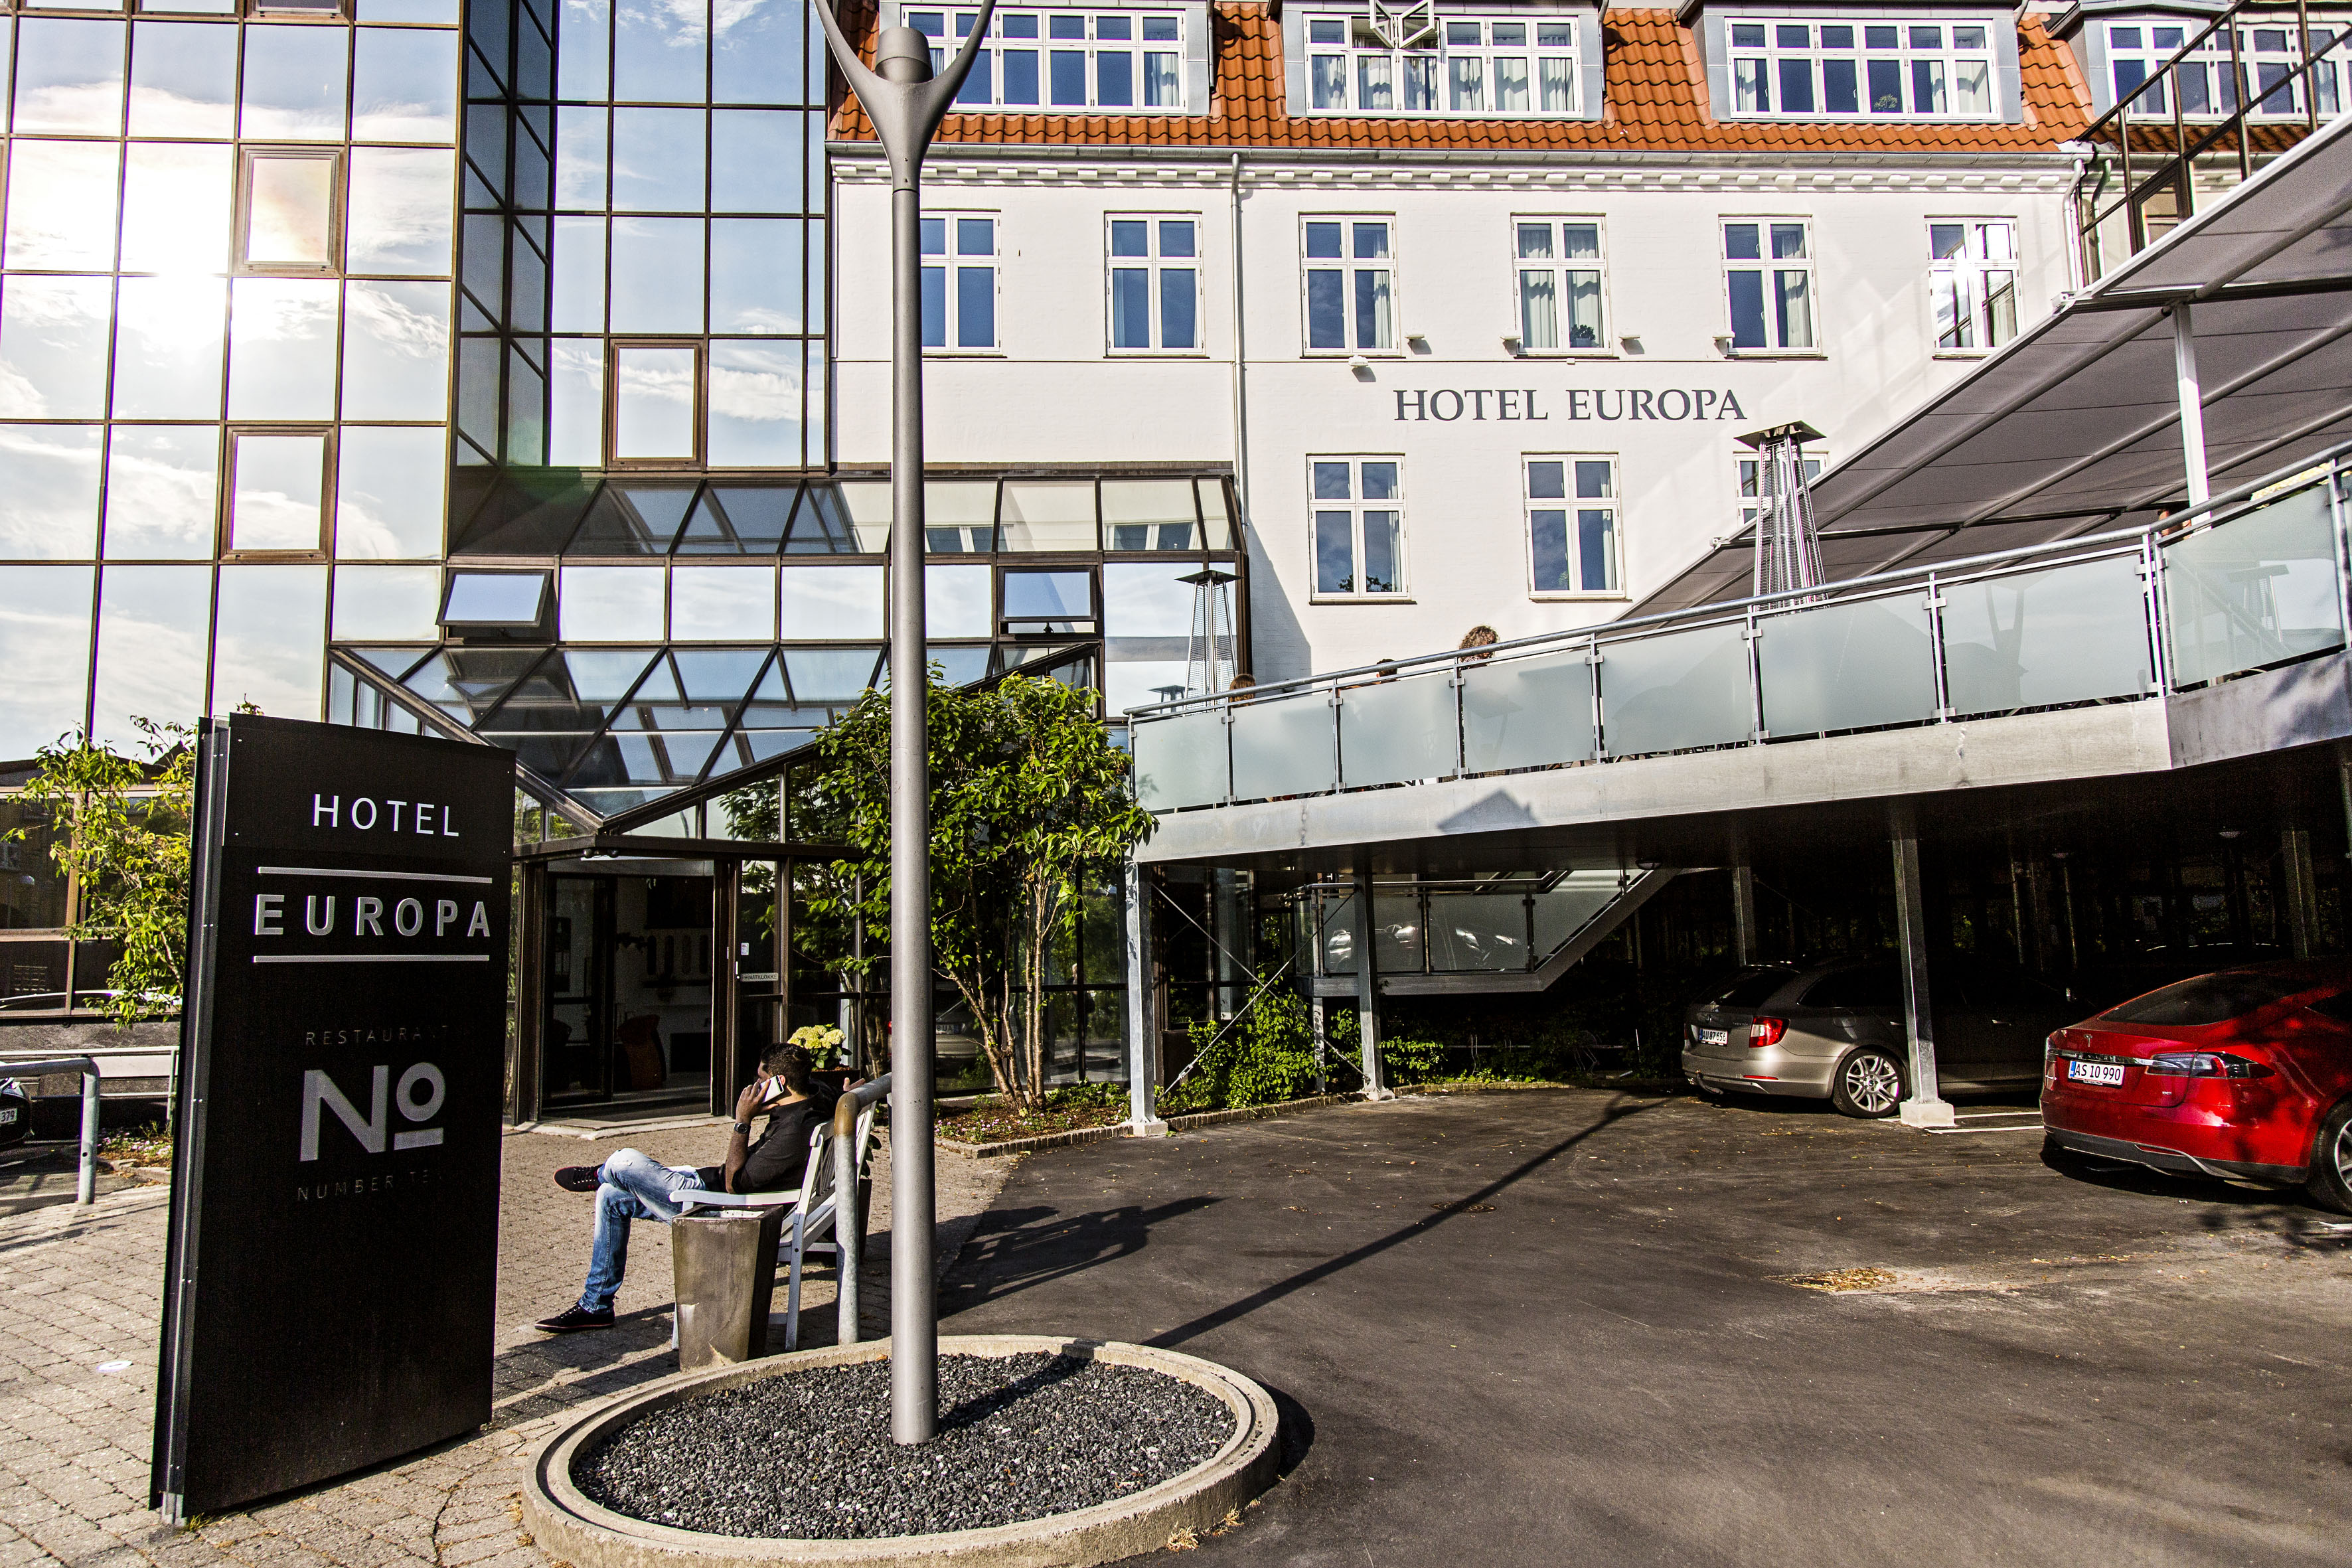 Hotel Europa - A break from daily life in southern Jutland